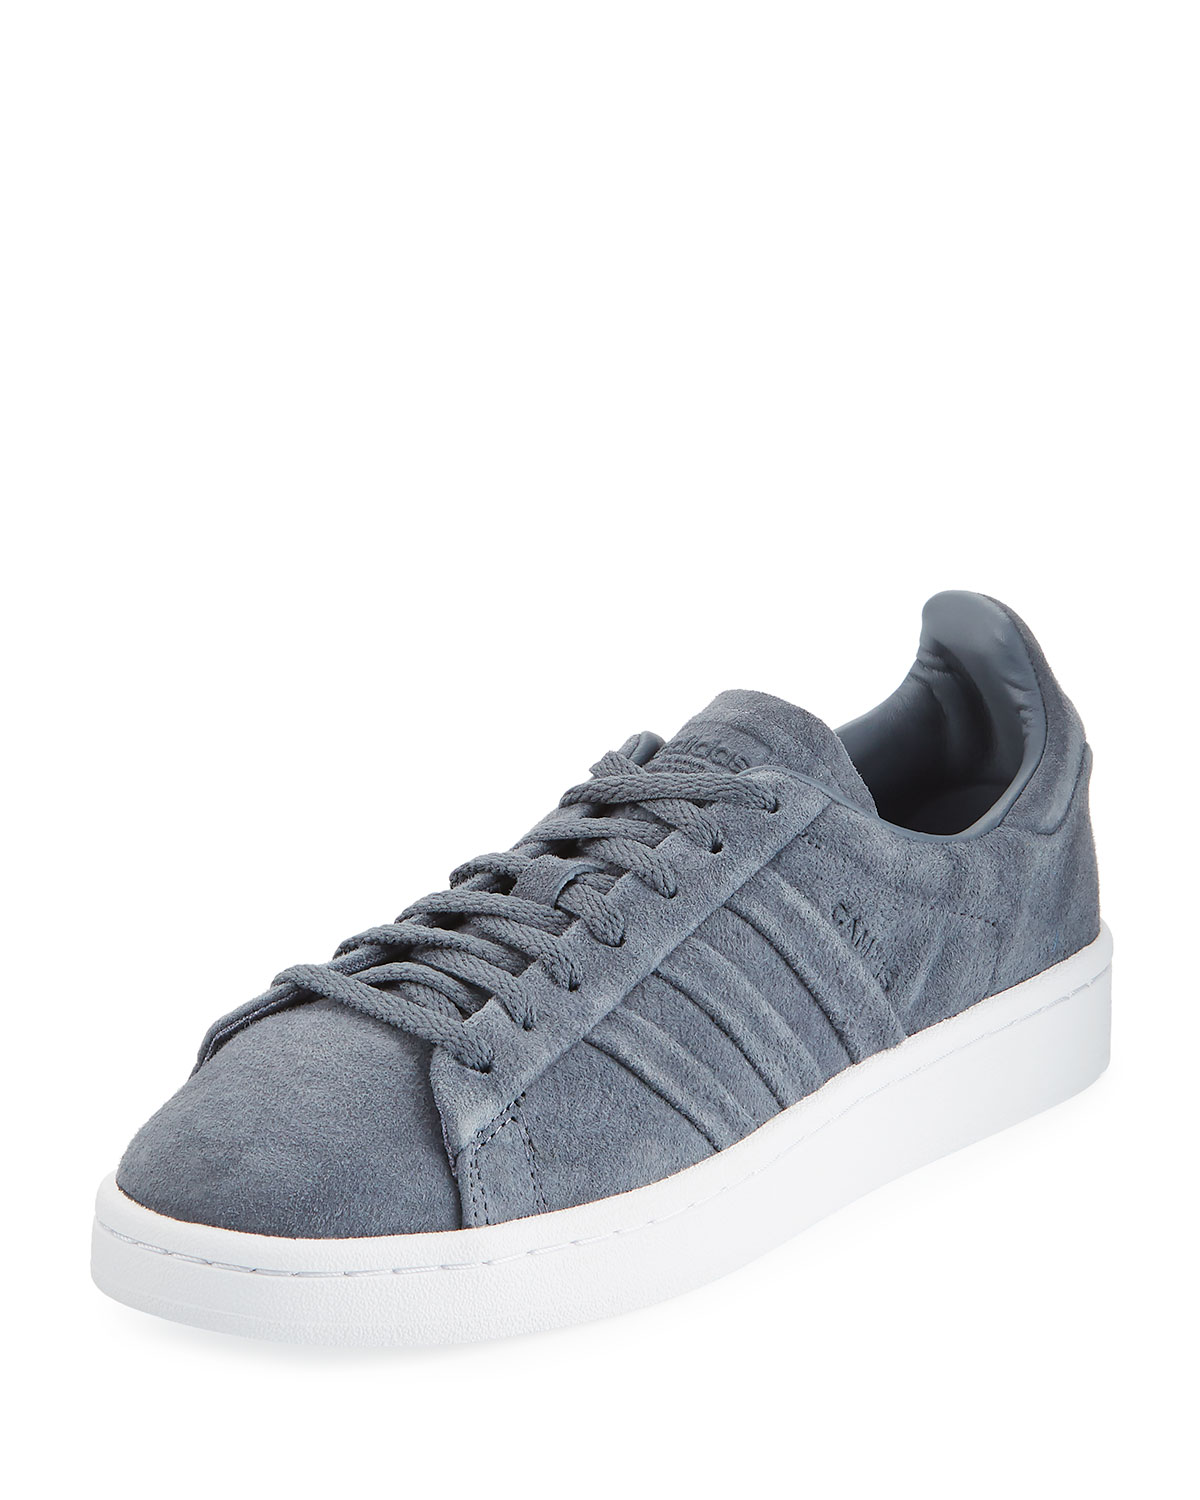 CAMPUS STITCH & TURN SUEDE LACE-UP SNEAKERS, ONYX